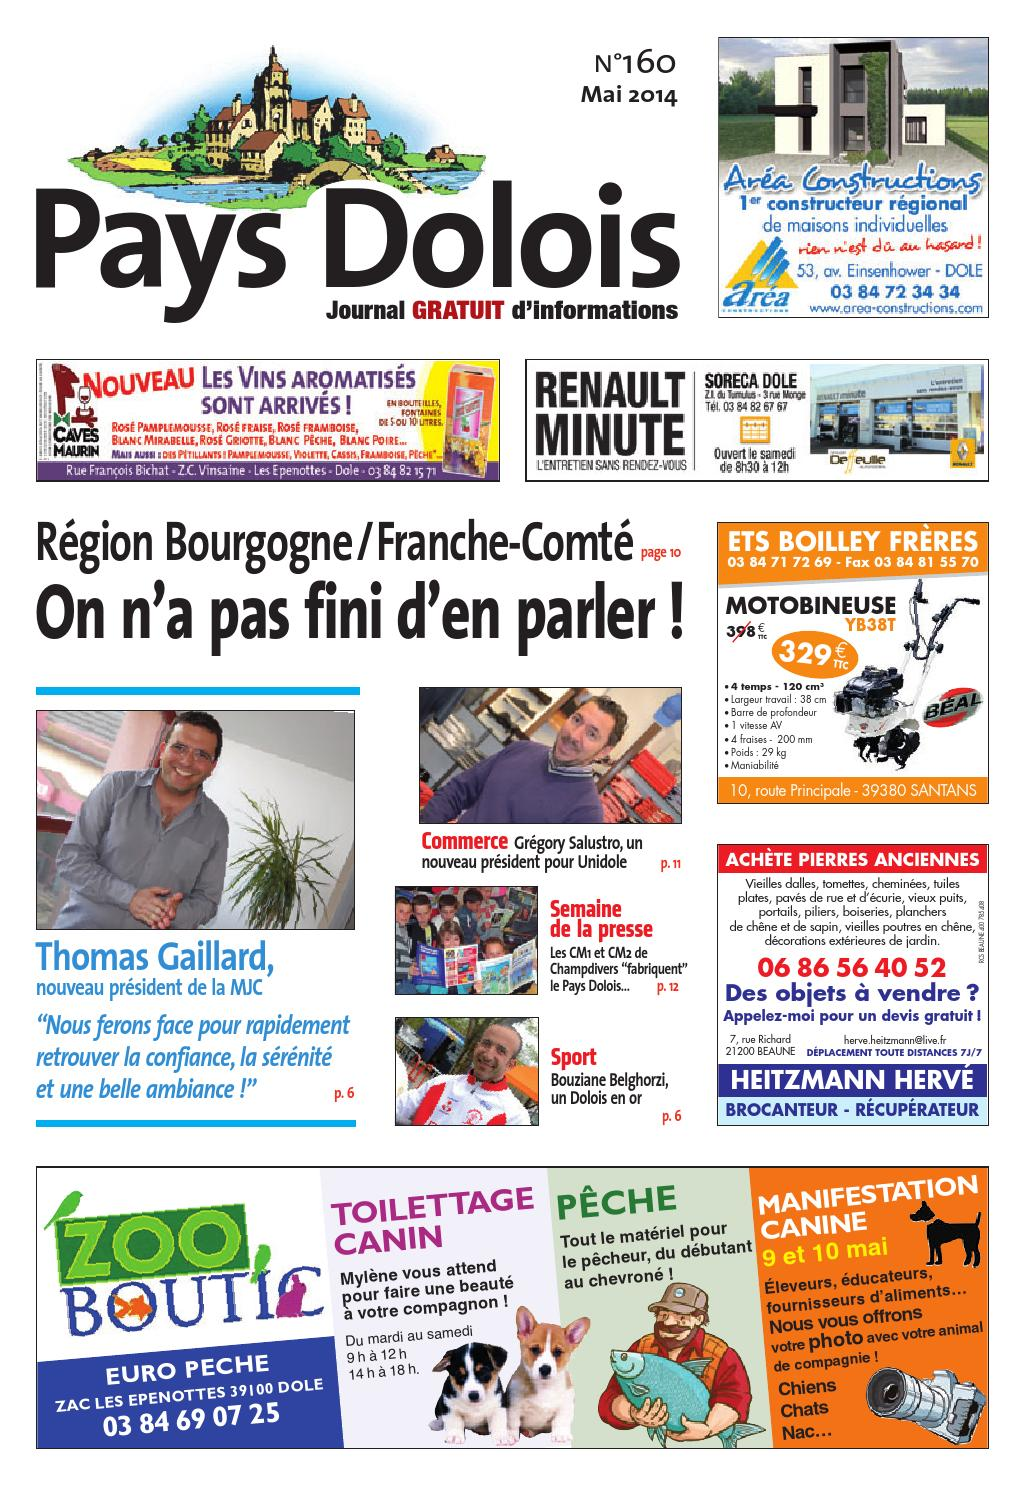 Insert Chemin Cheminée Largeur 120 Cm Philippe Pays Dolois 160 By Paoh Issuu